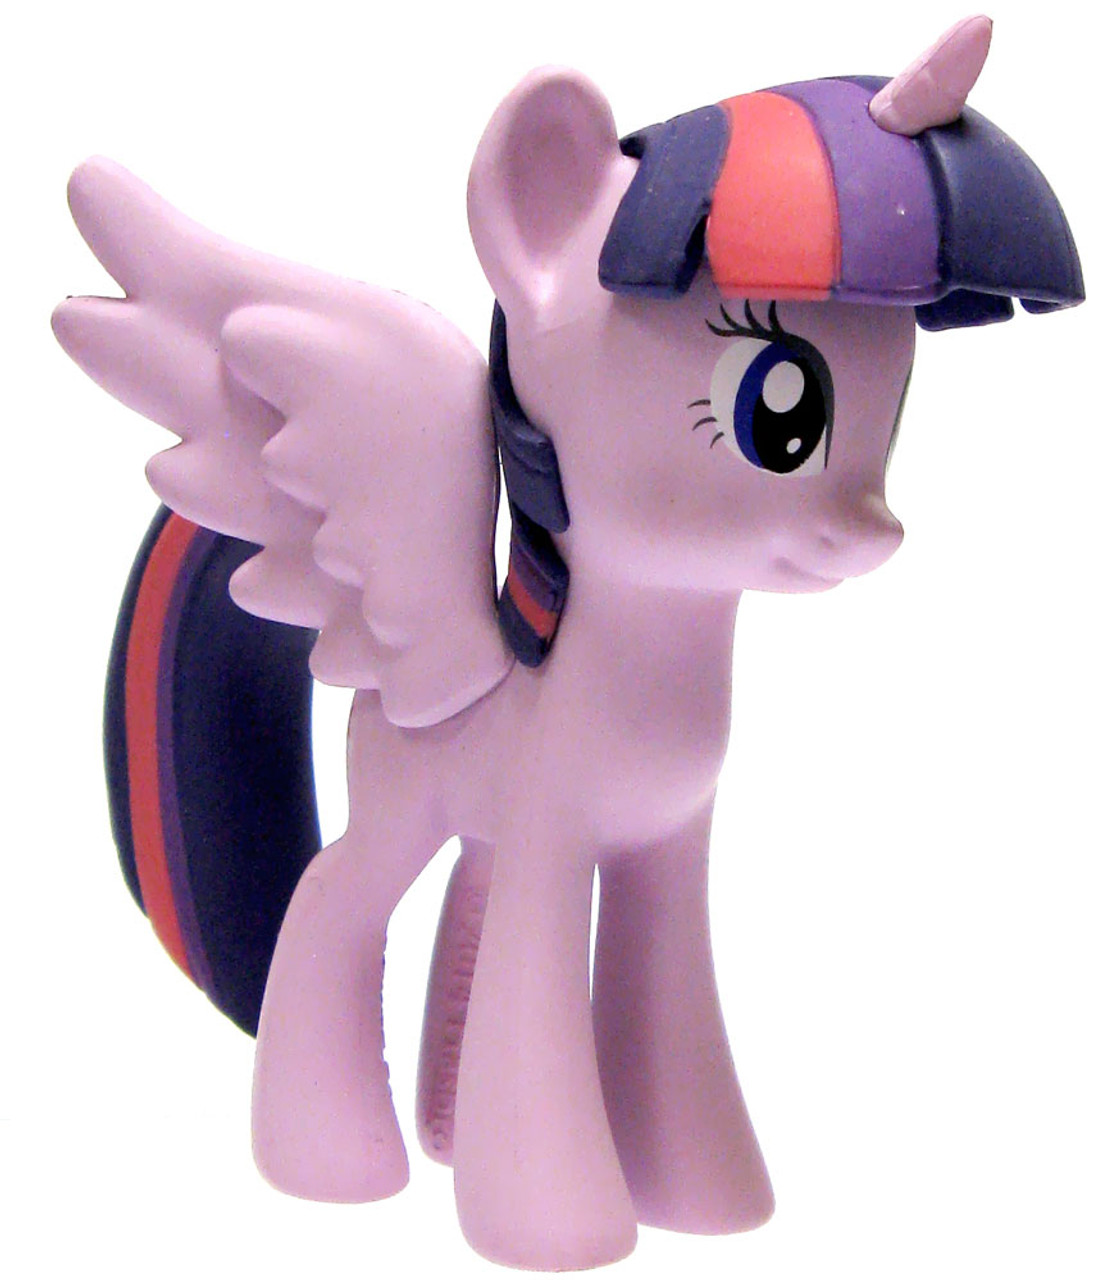 Funko My Little Pony Mystery Minis Series 2 Princess Twilight Sparkle 2.5-Inch Mini Figure [Show Colors Loose]